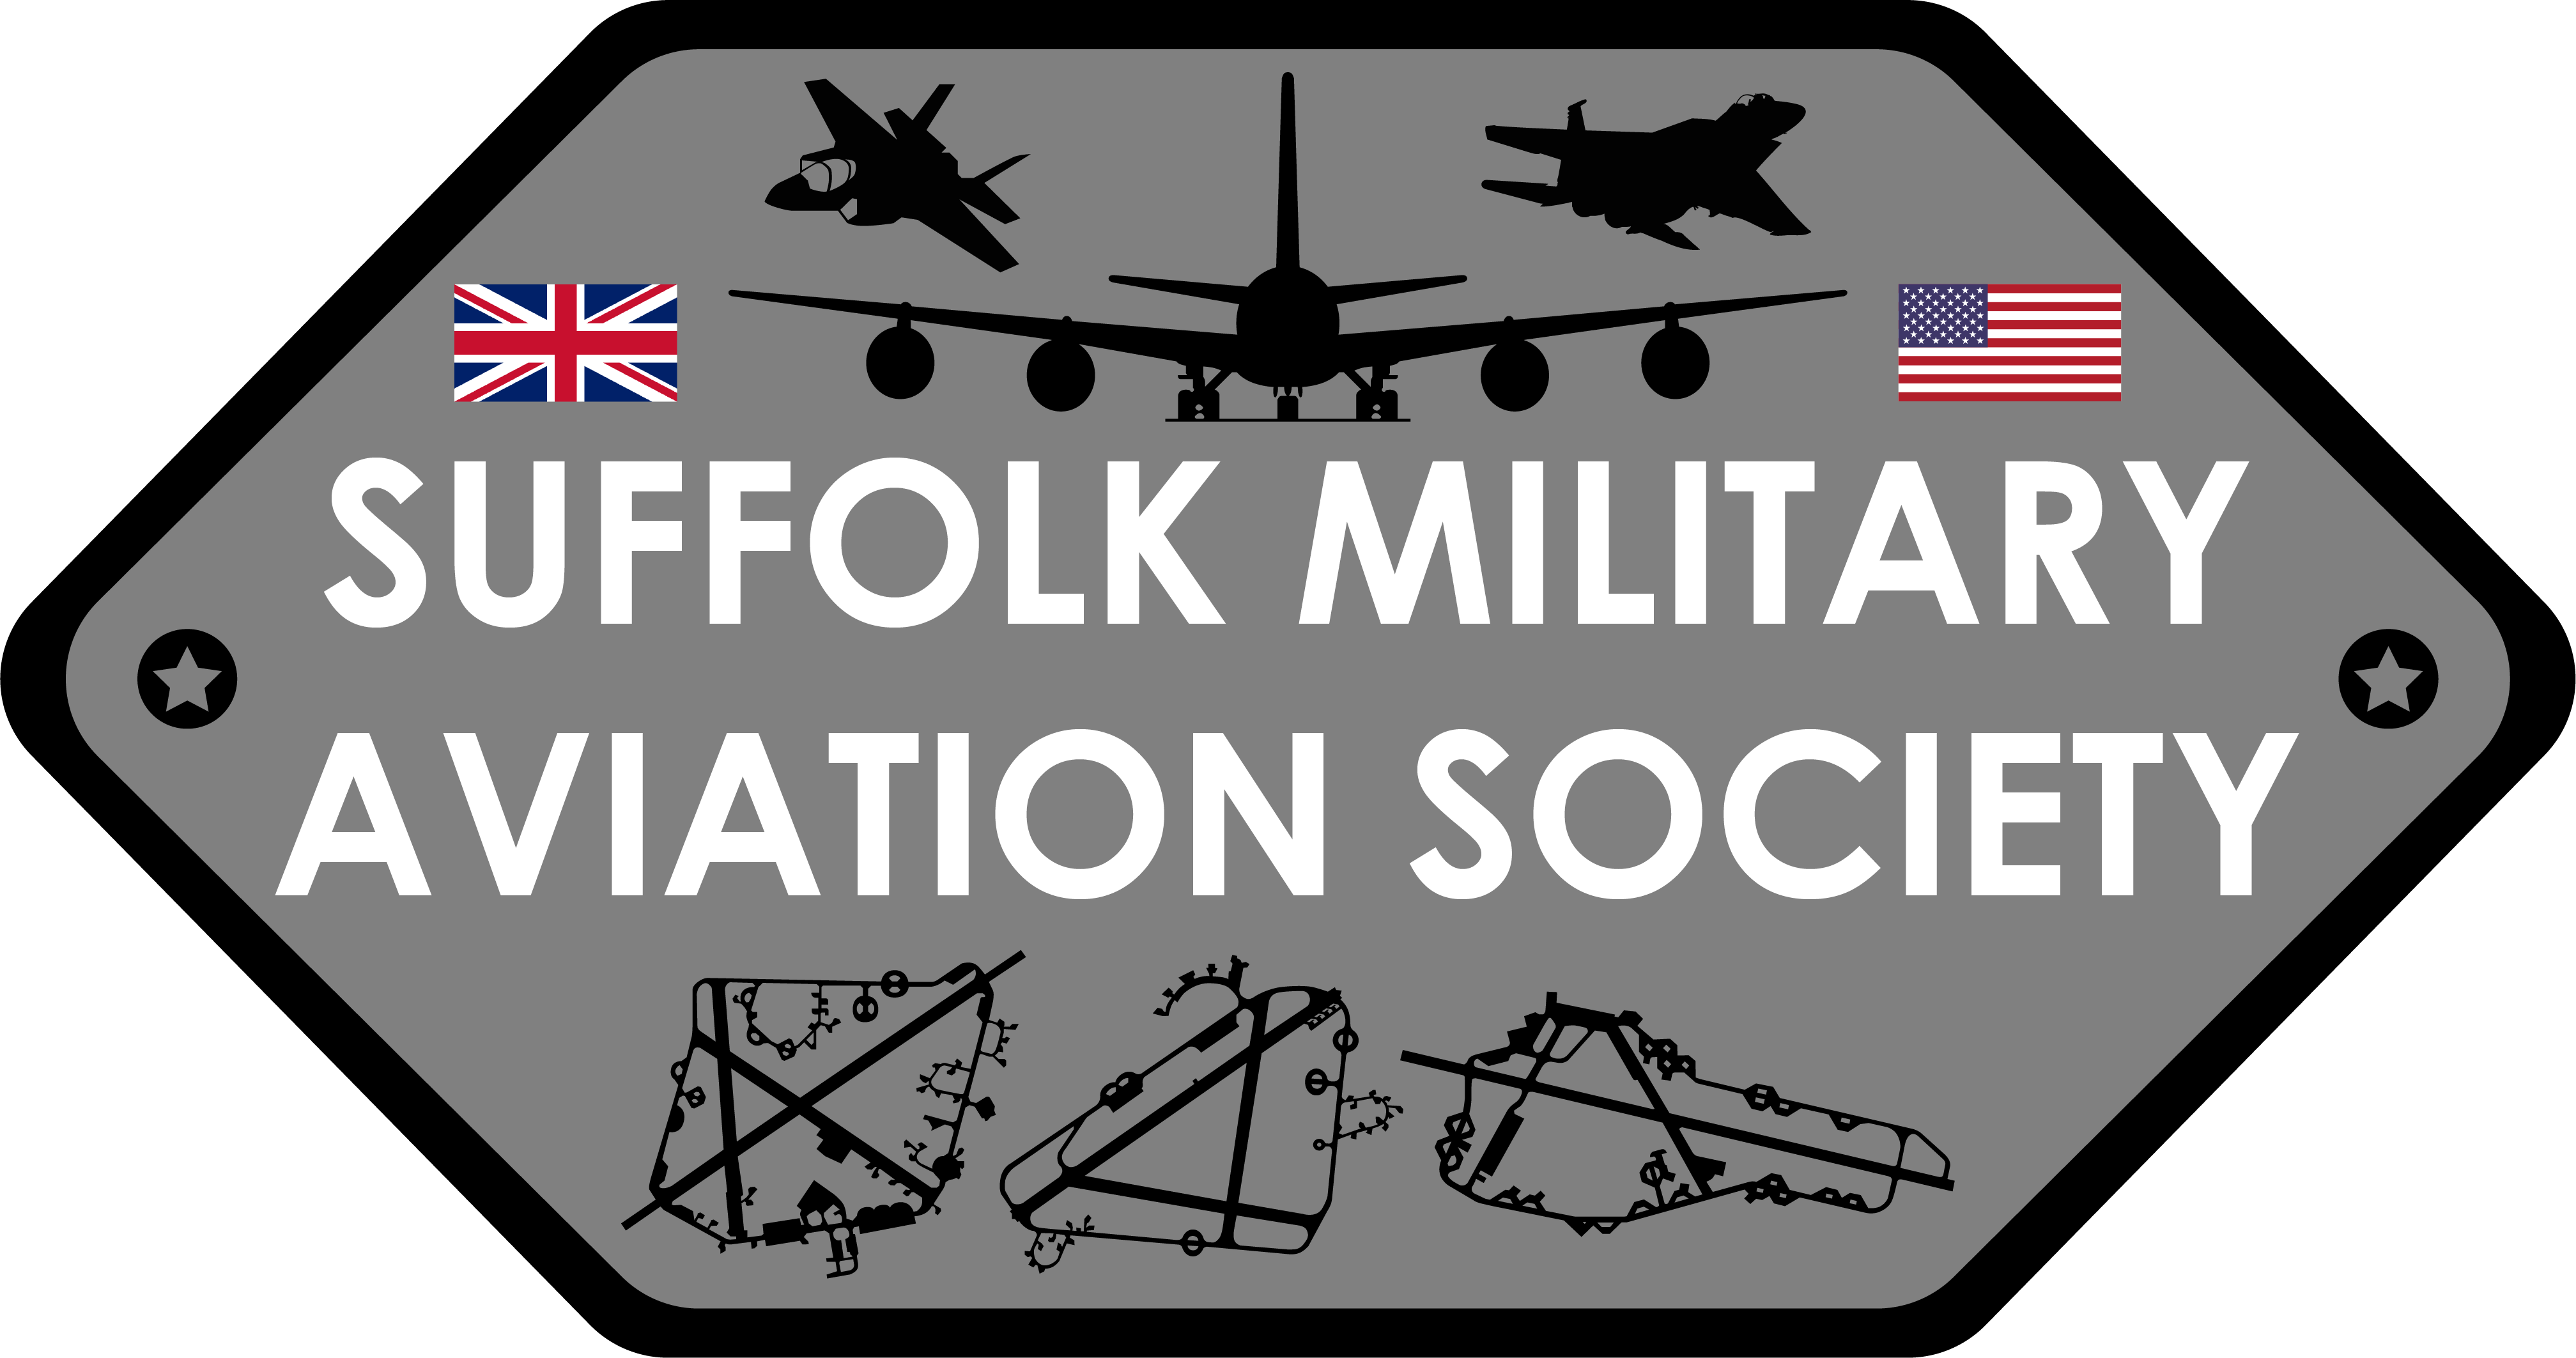 Suffolk Military Aviation Society